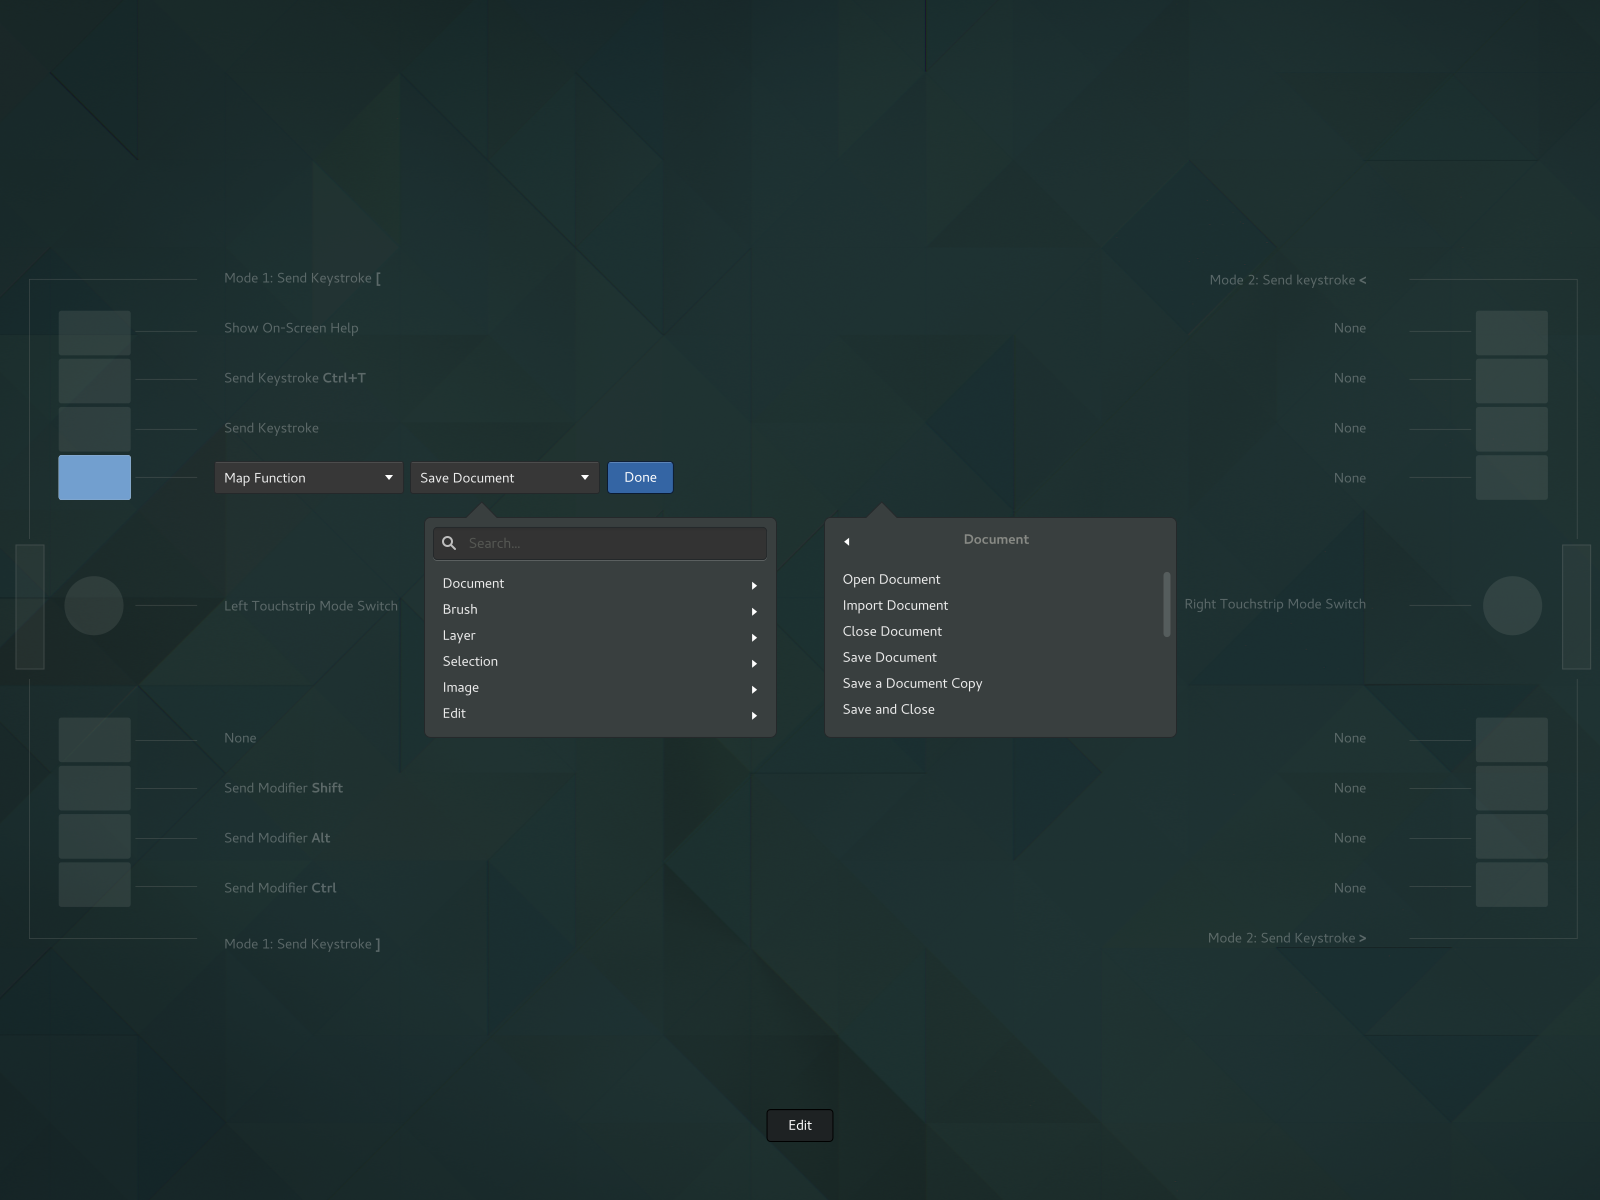 https://raw.githubusercontent.com/gnome-design-team/gnome-mockups/master/system-settings/tablets/osd-cintiq-21UX-edit-5.png